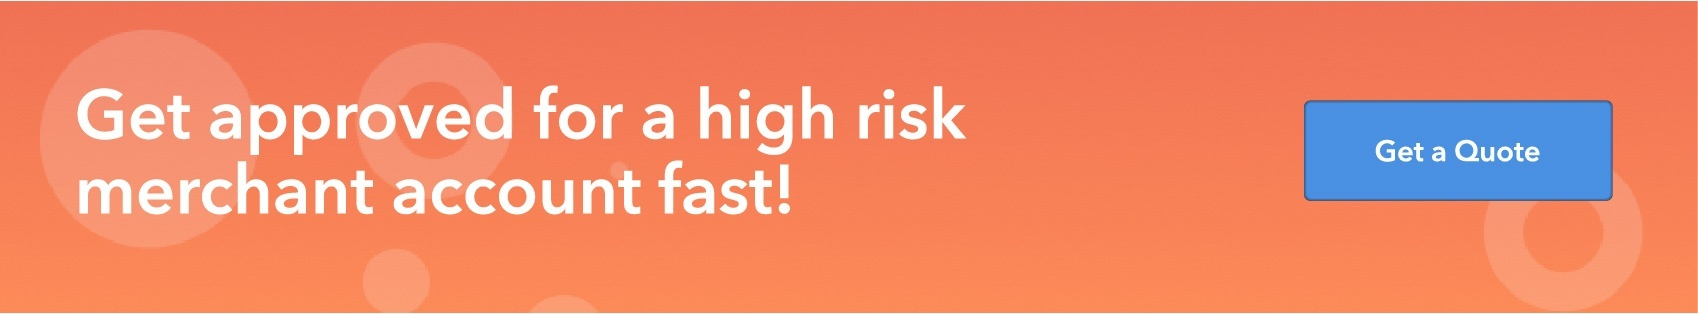 Get approved for a high risk merchant account fast!